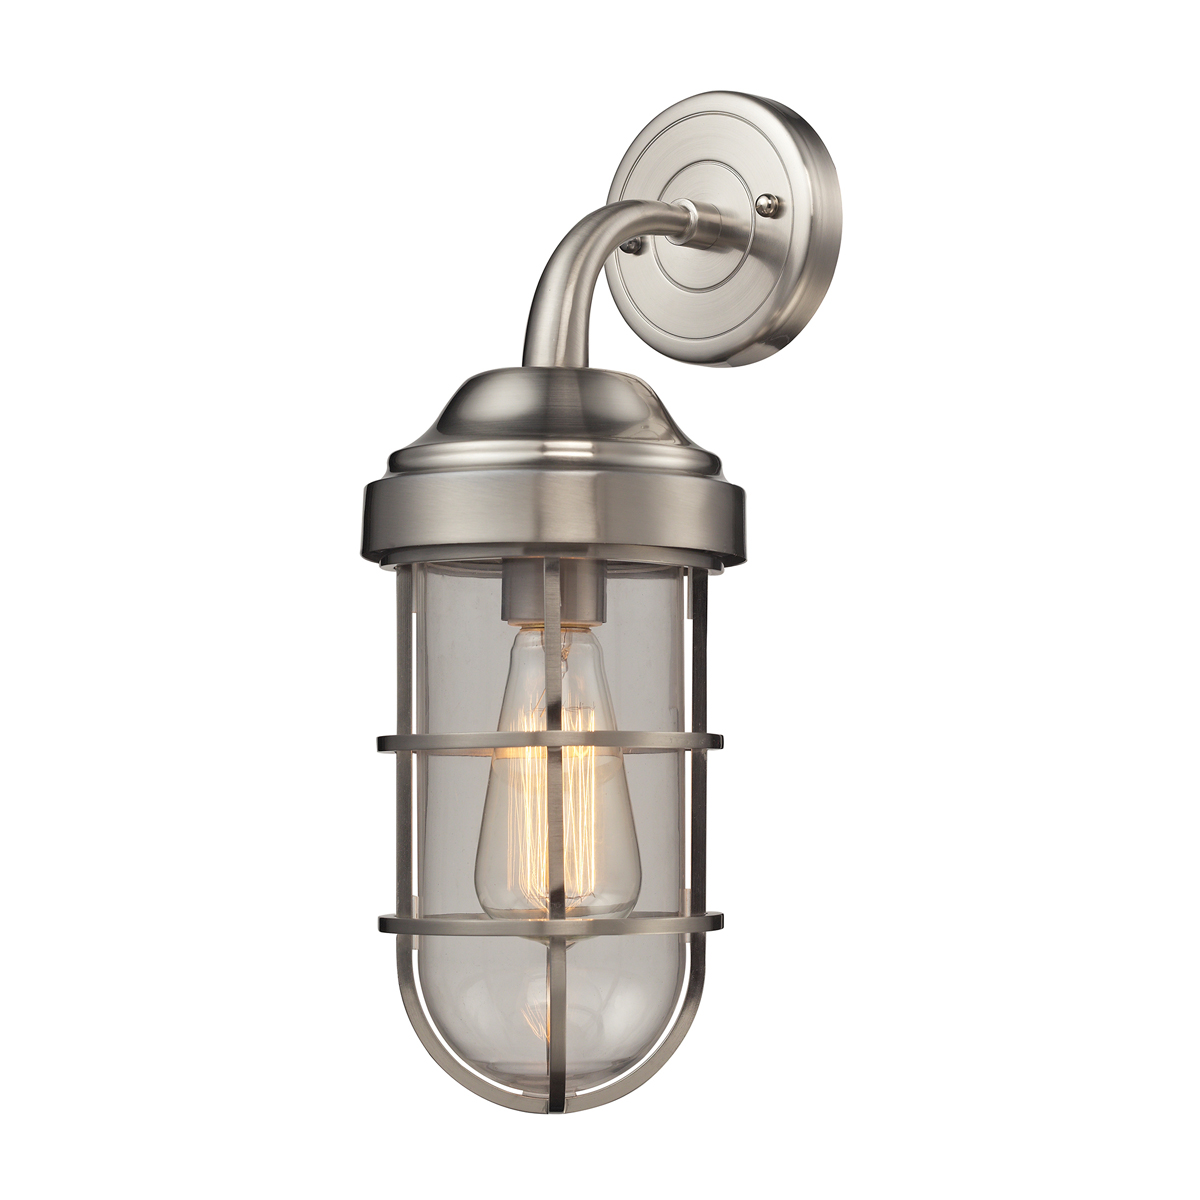 elk-lighting-66355-1-seaport-1-light-sco